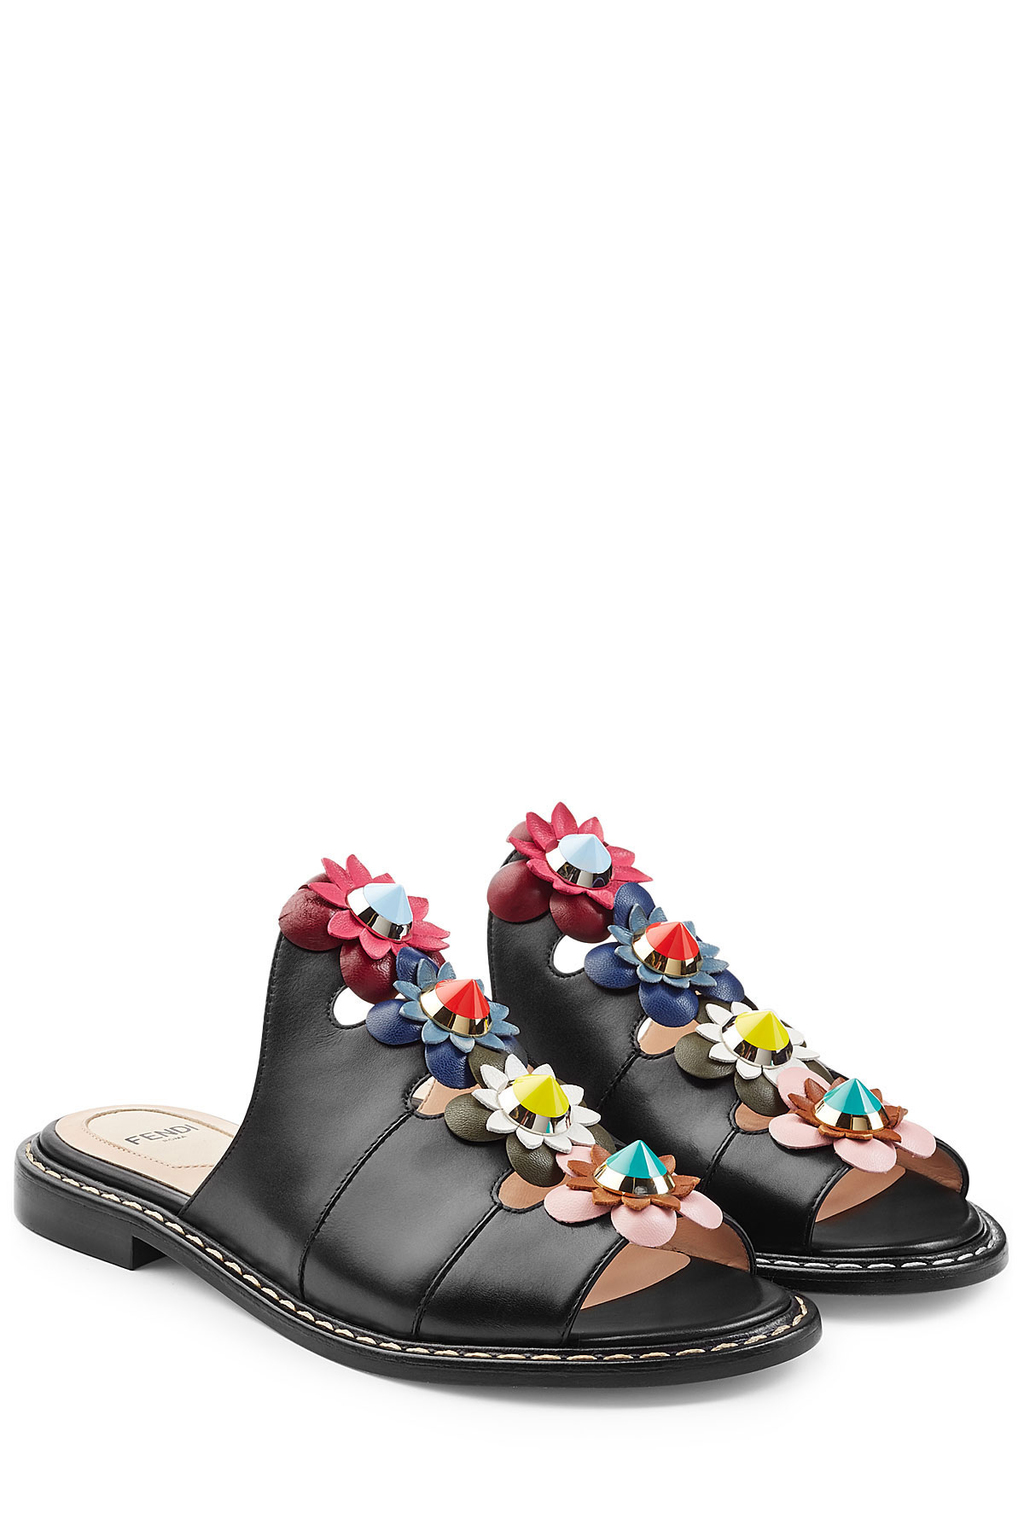 Leather Sandals With Floral Applique - predominant colour: black; occasions: casual, holiday; material: leather; heel height: flat; heel: standard; toe: open toe/peeptoe; style: slides; finish: plain; pattern: plain; embellishment: applique; multicoloured: multicoloured; season: s/s 2016; wardrobe: highlight